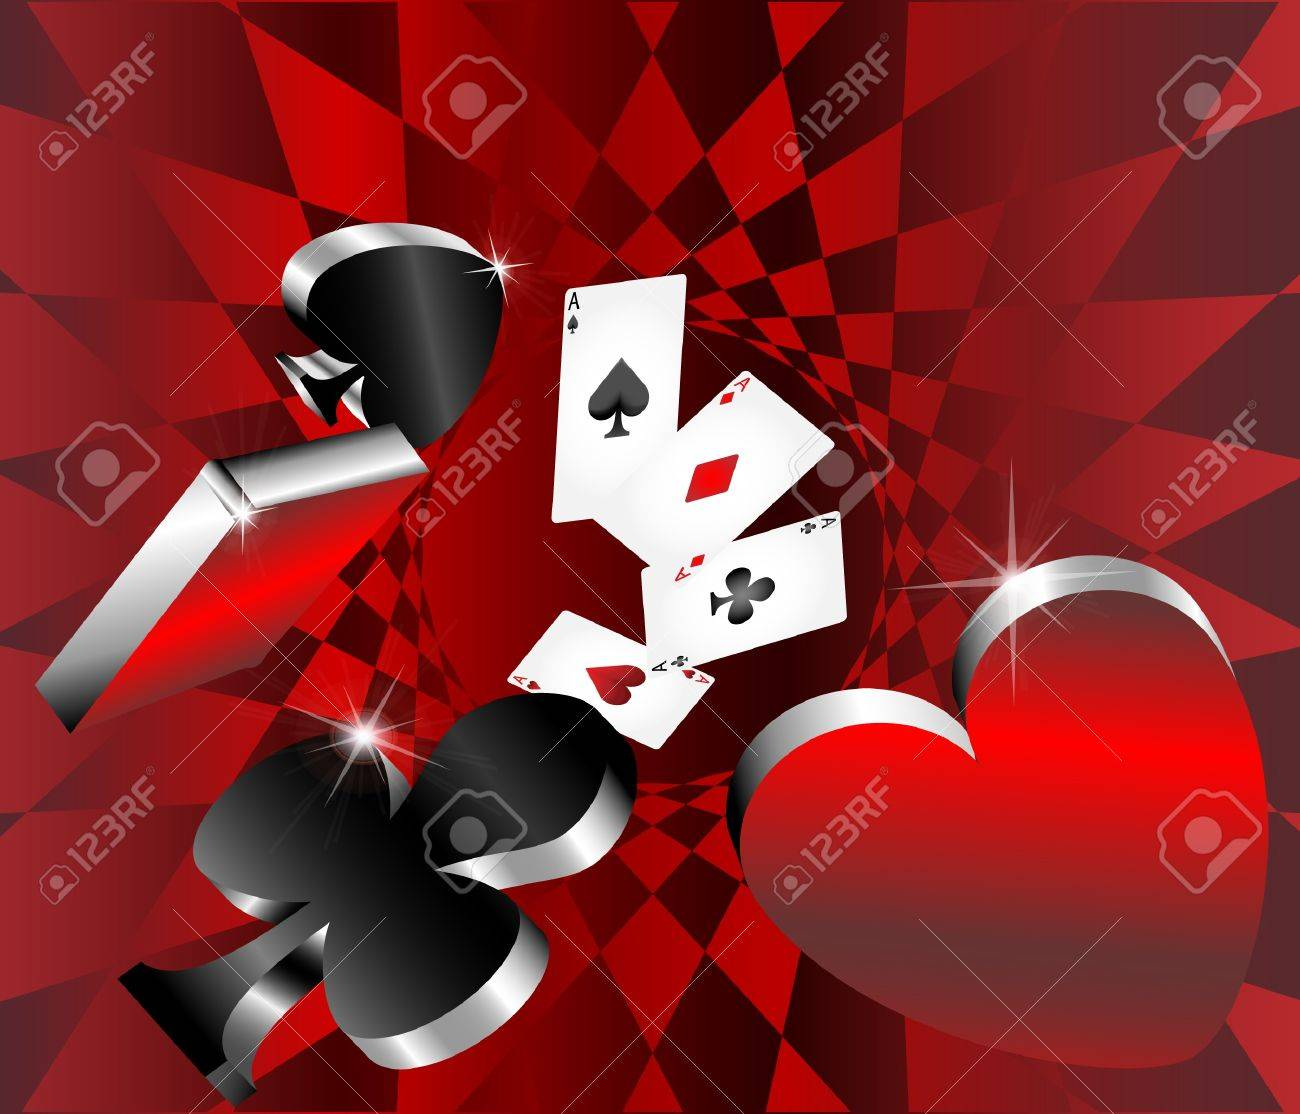 gambling icons cards shiny metallic glossy symbols of playing cards abstract background vector illustration Stock Vector - 17956018